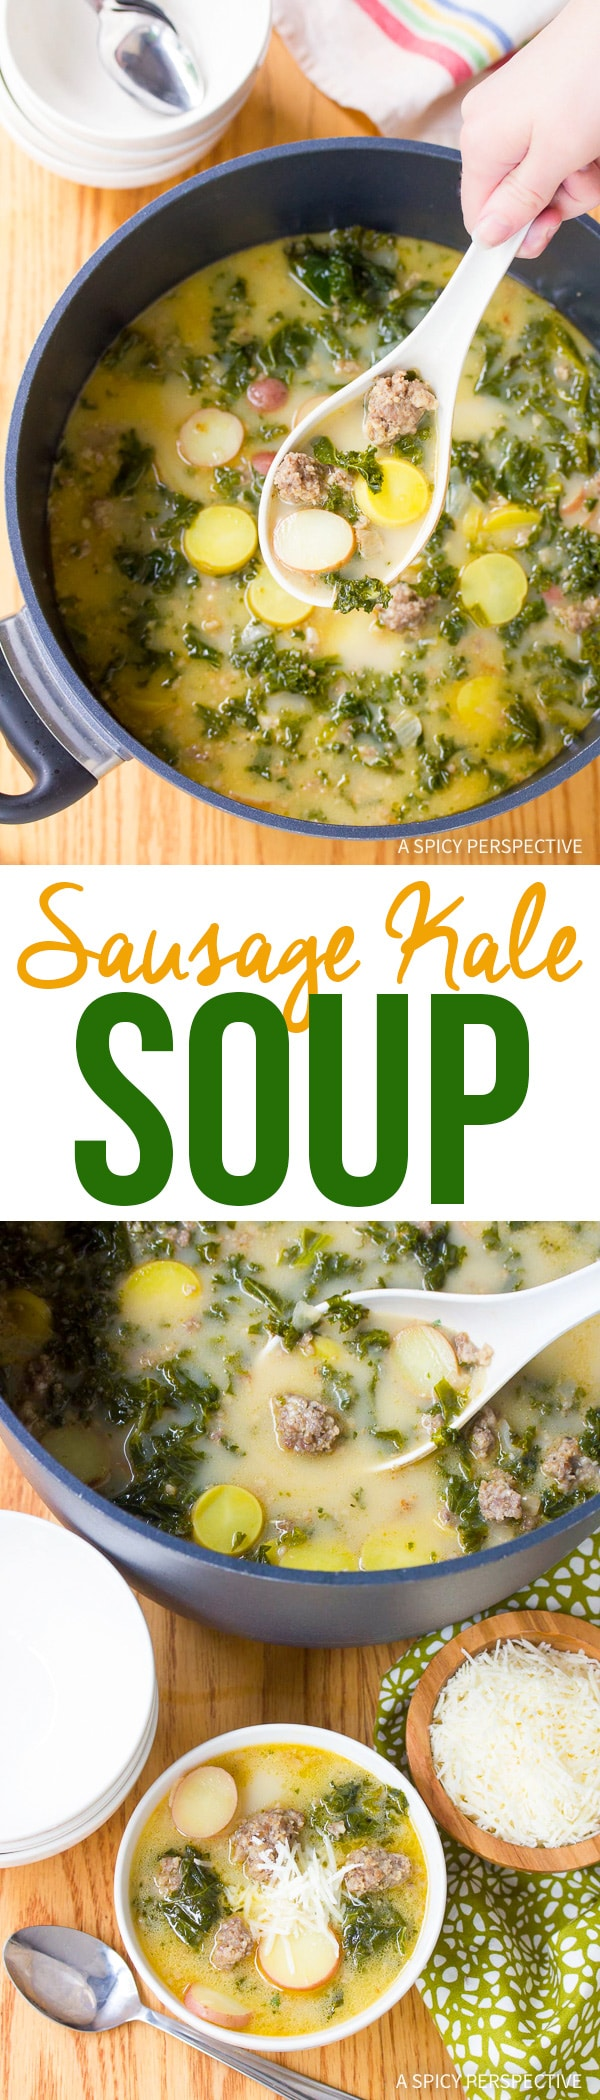 Zesty Sausage and Kale Soup Recipe